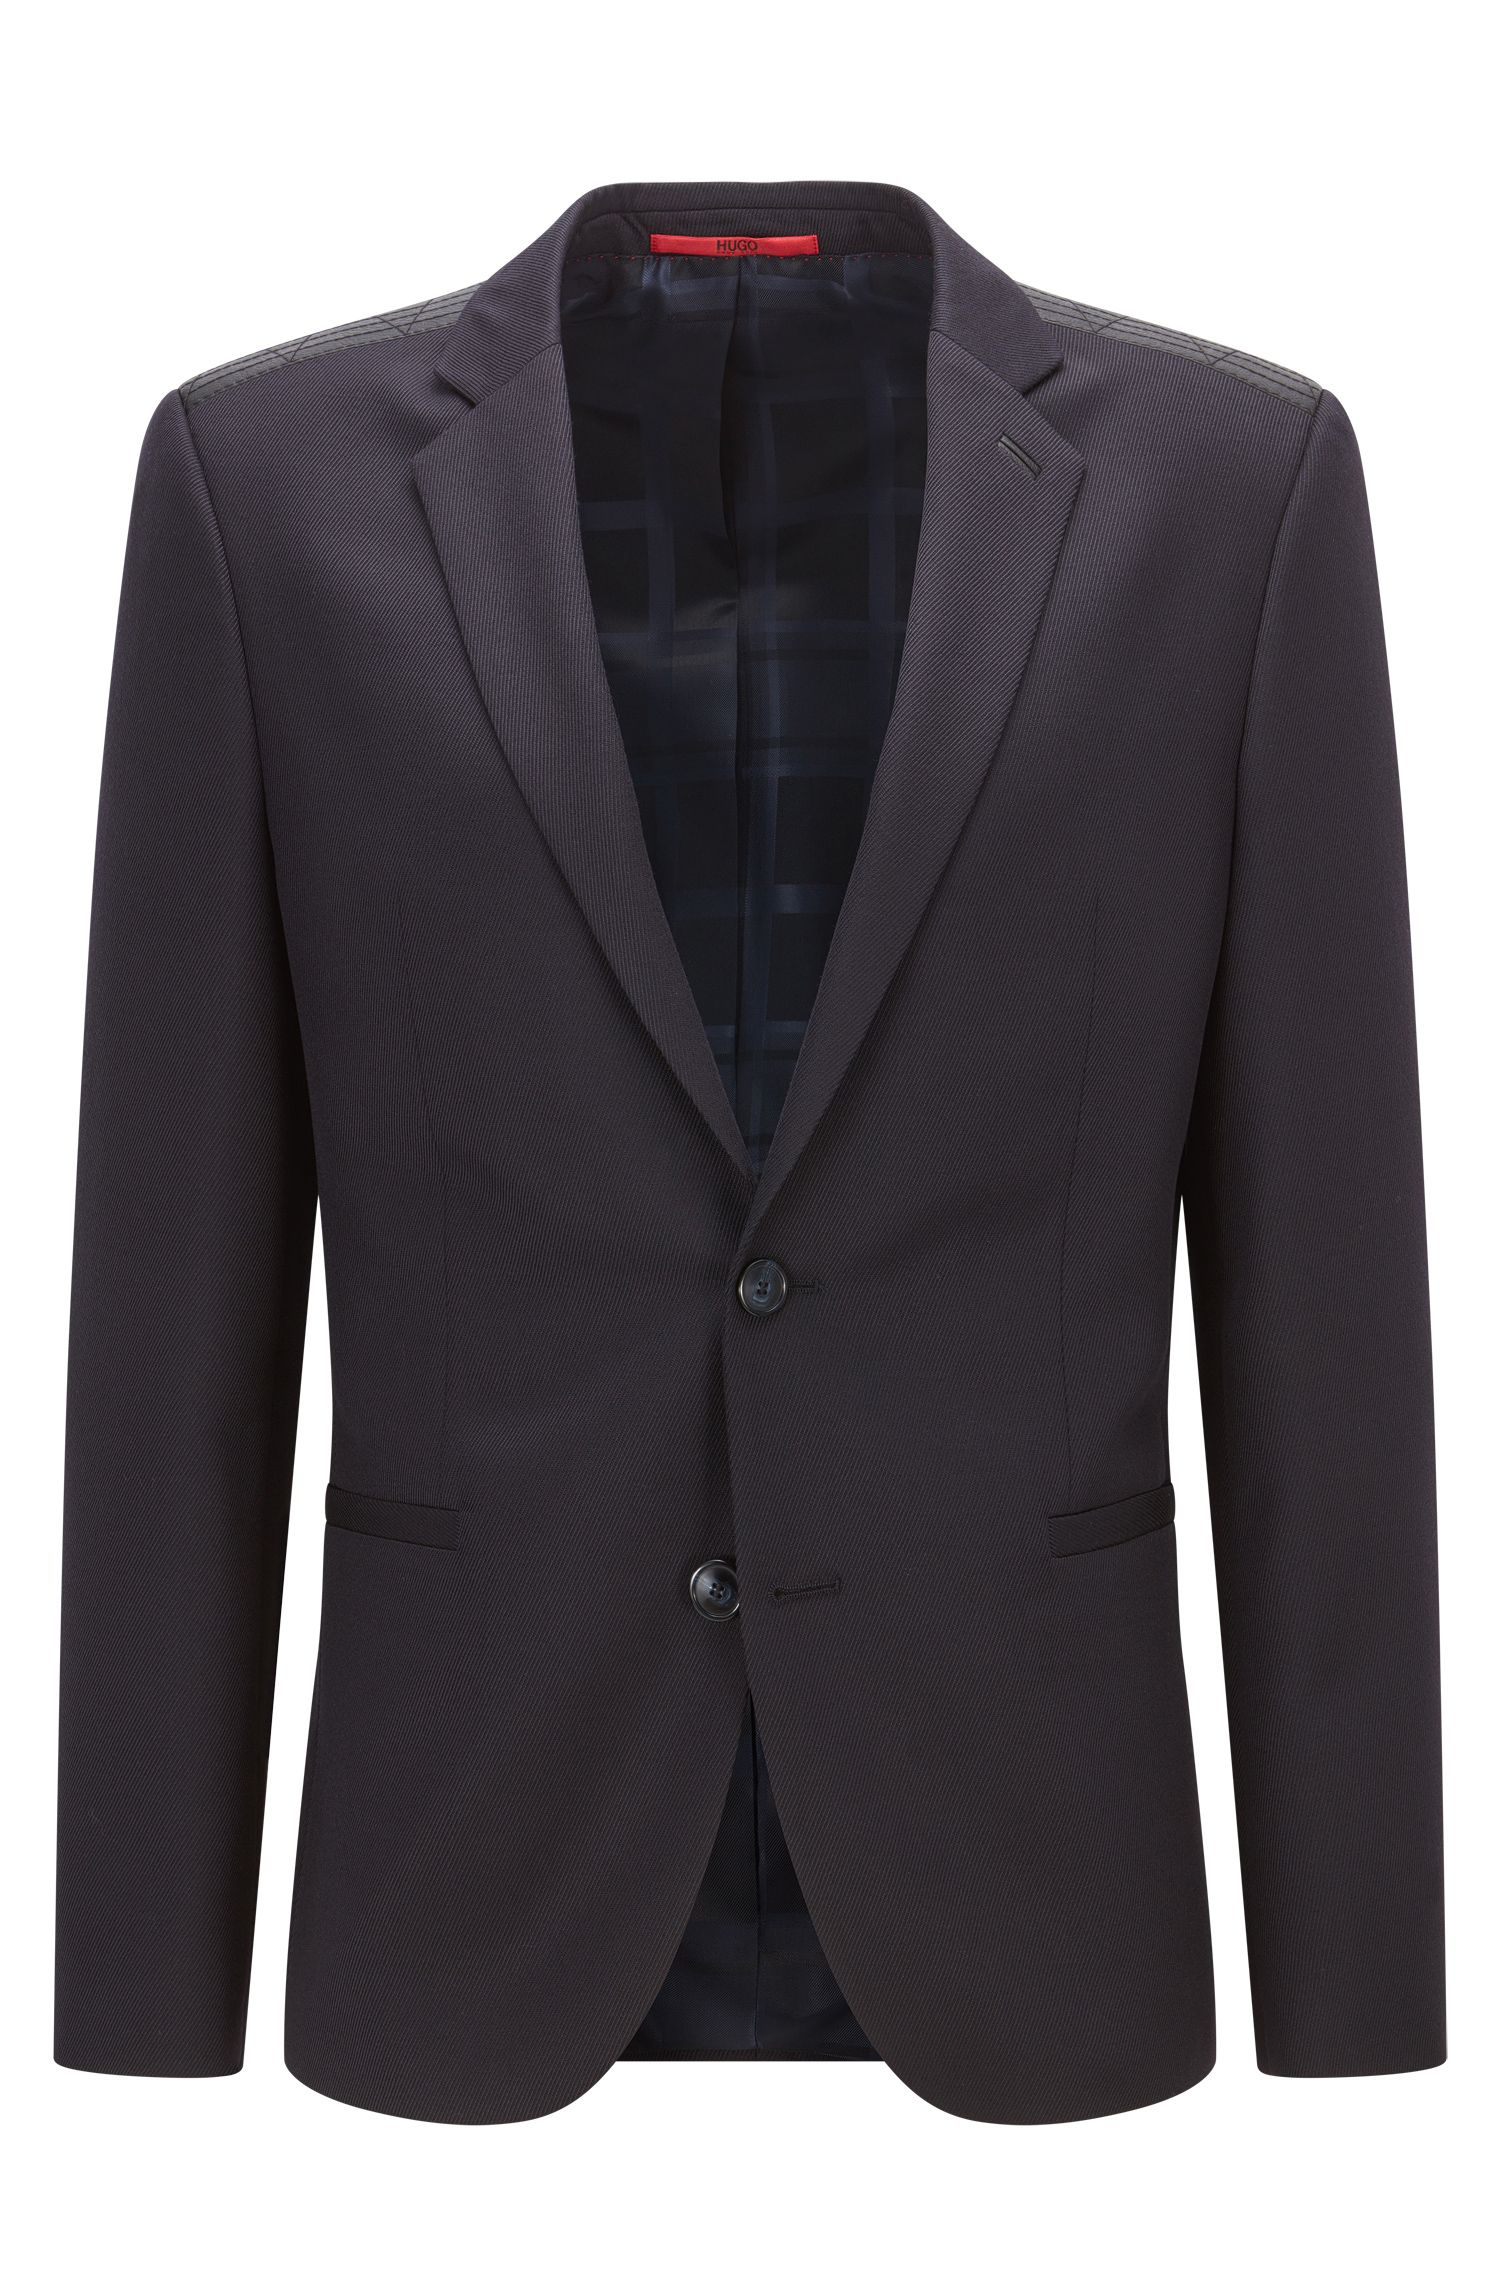 Extra-slim-fit virgin wool jacket with leather trim